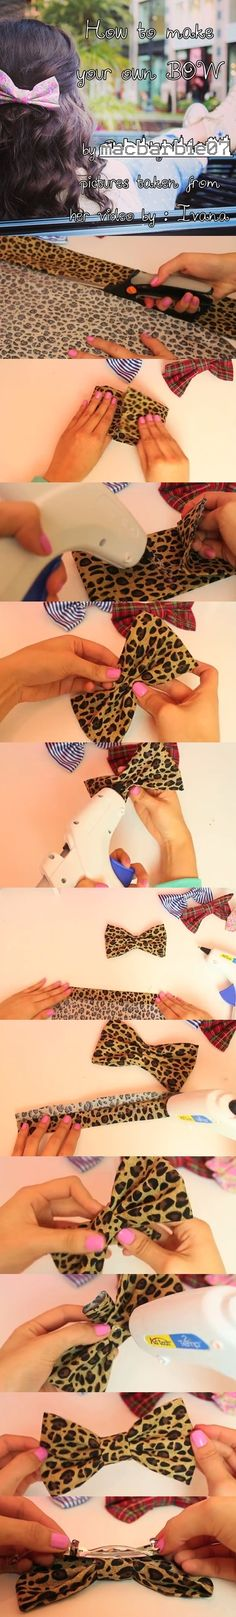 This is by Macbarbie07 I took the pictures from her video so I can make this…